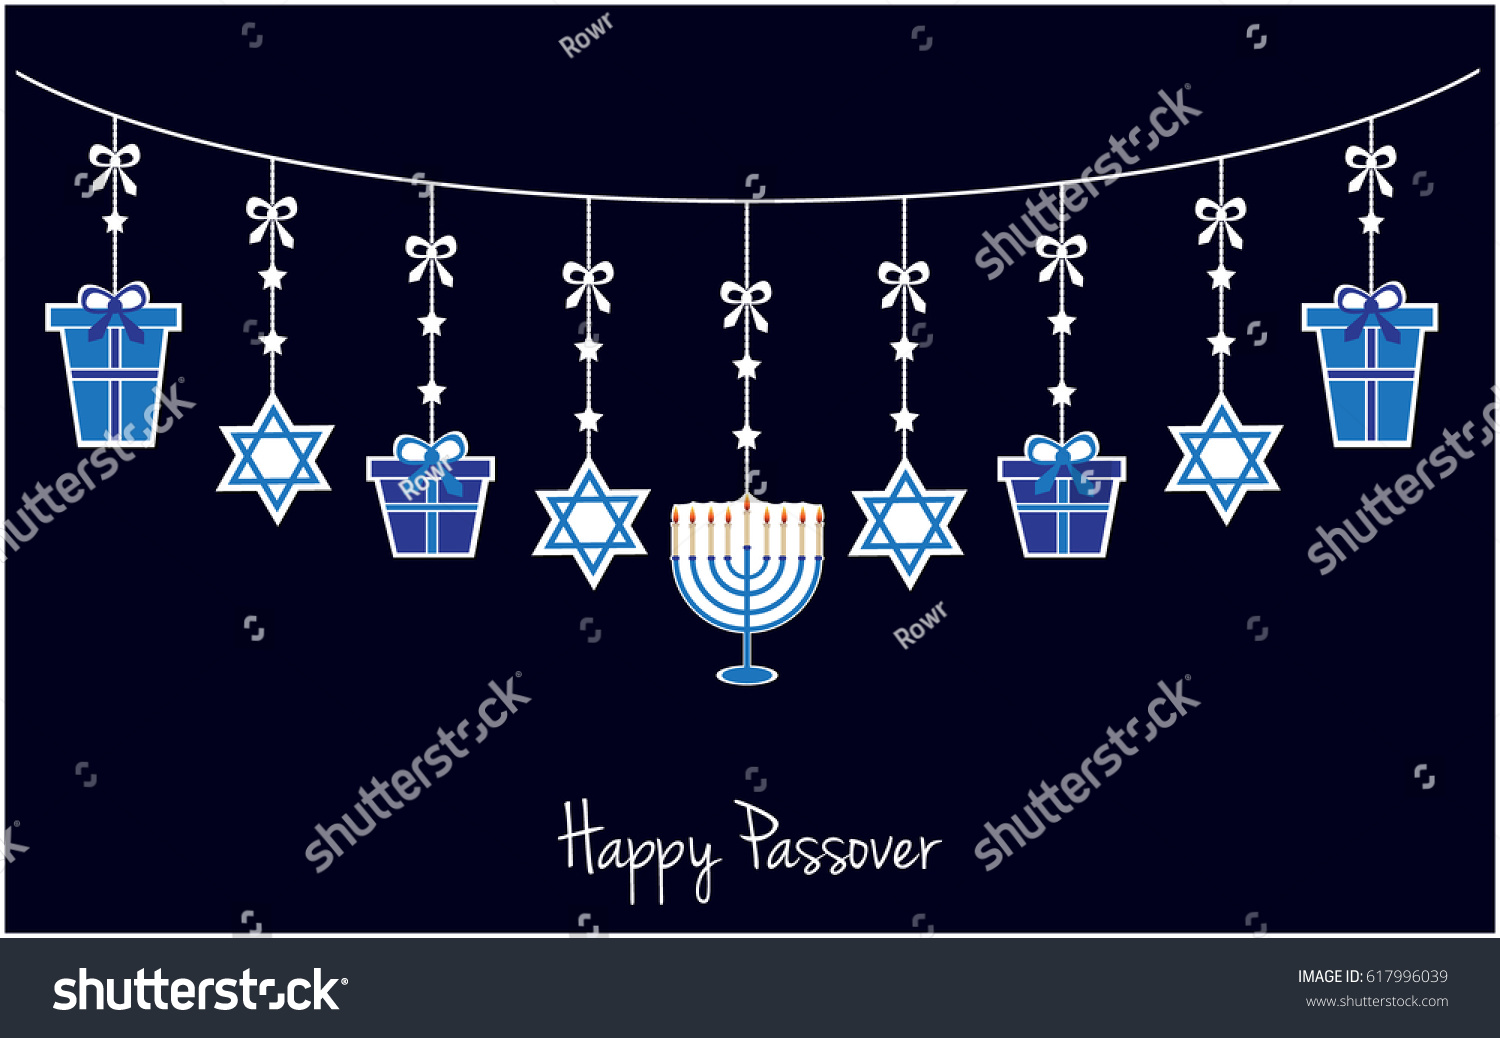 Happy Passover Greeting Card Background Jewish Stock Vector Royalty